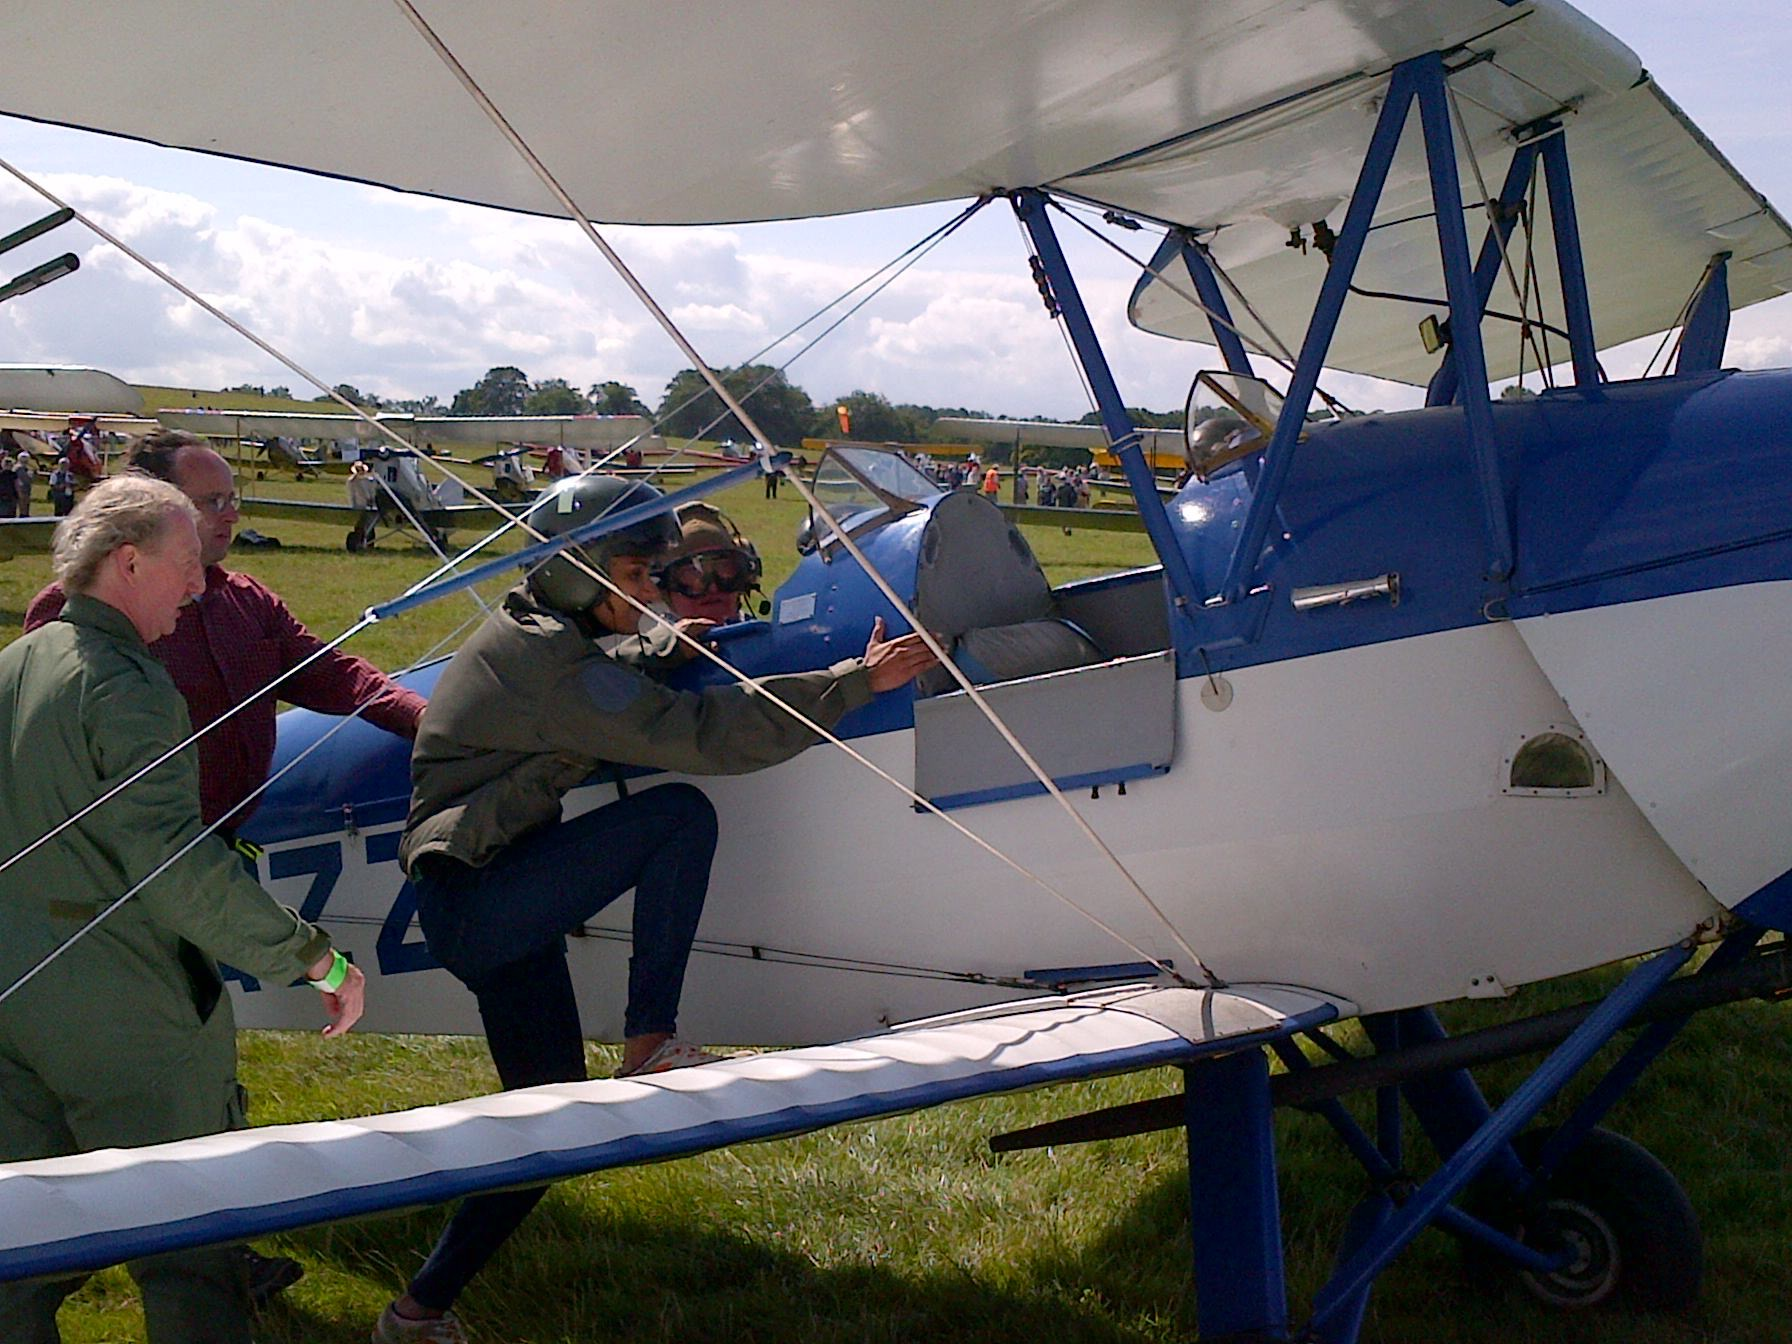 """""""When life offers you the chance to do aerobatics in a biplane, say yes."""" - Asher Jay"""